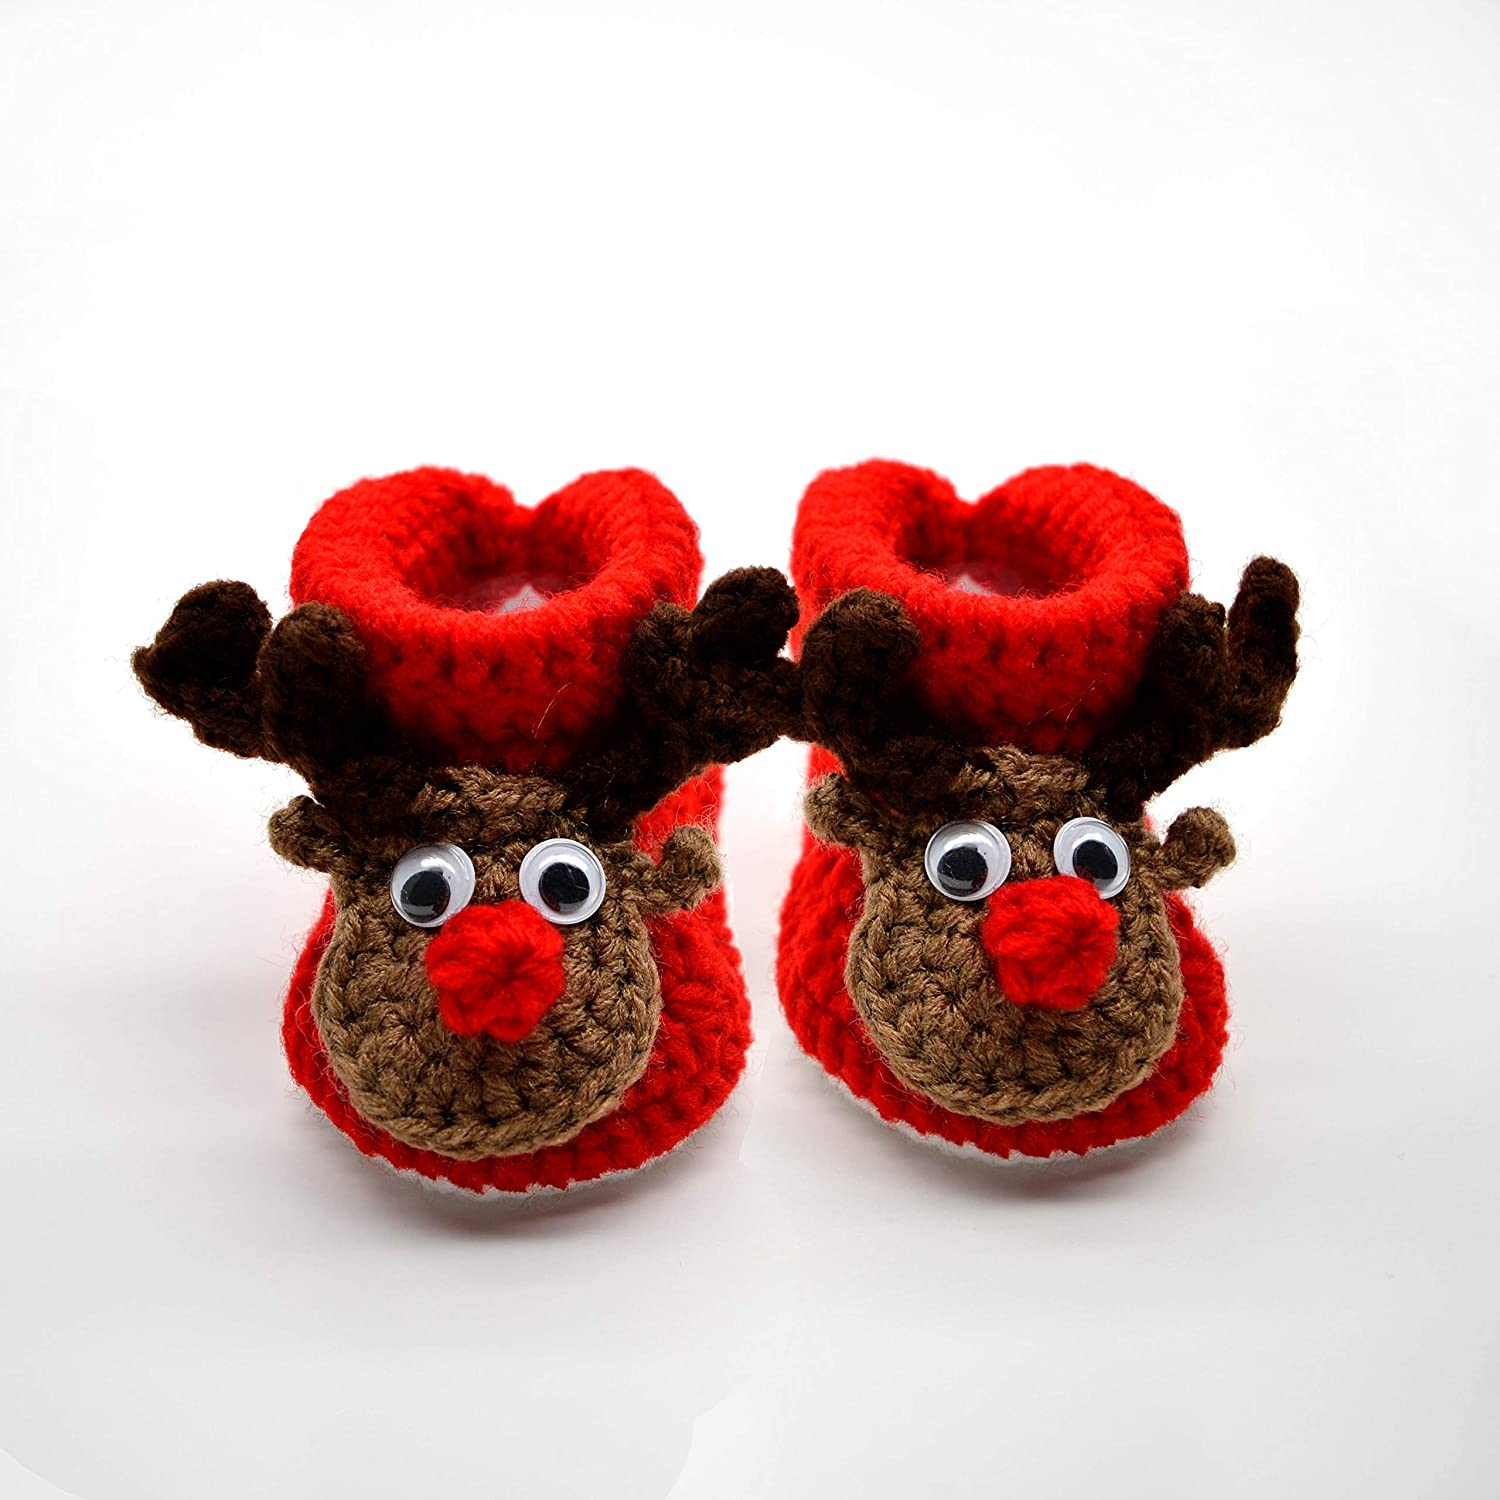 Crochet Red Booties for Infant or Newborn Baby - Reindeer, Excellent Gift for Baby First Christmas, Unisex Baby Shoes